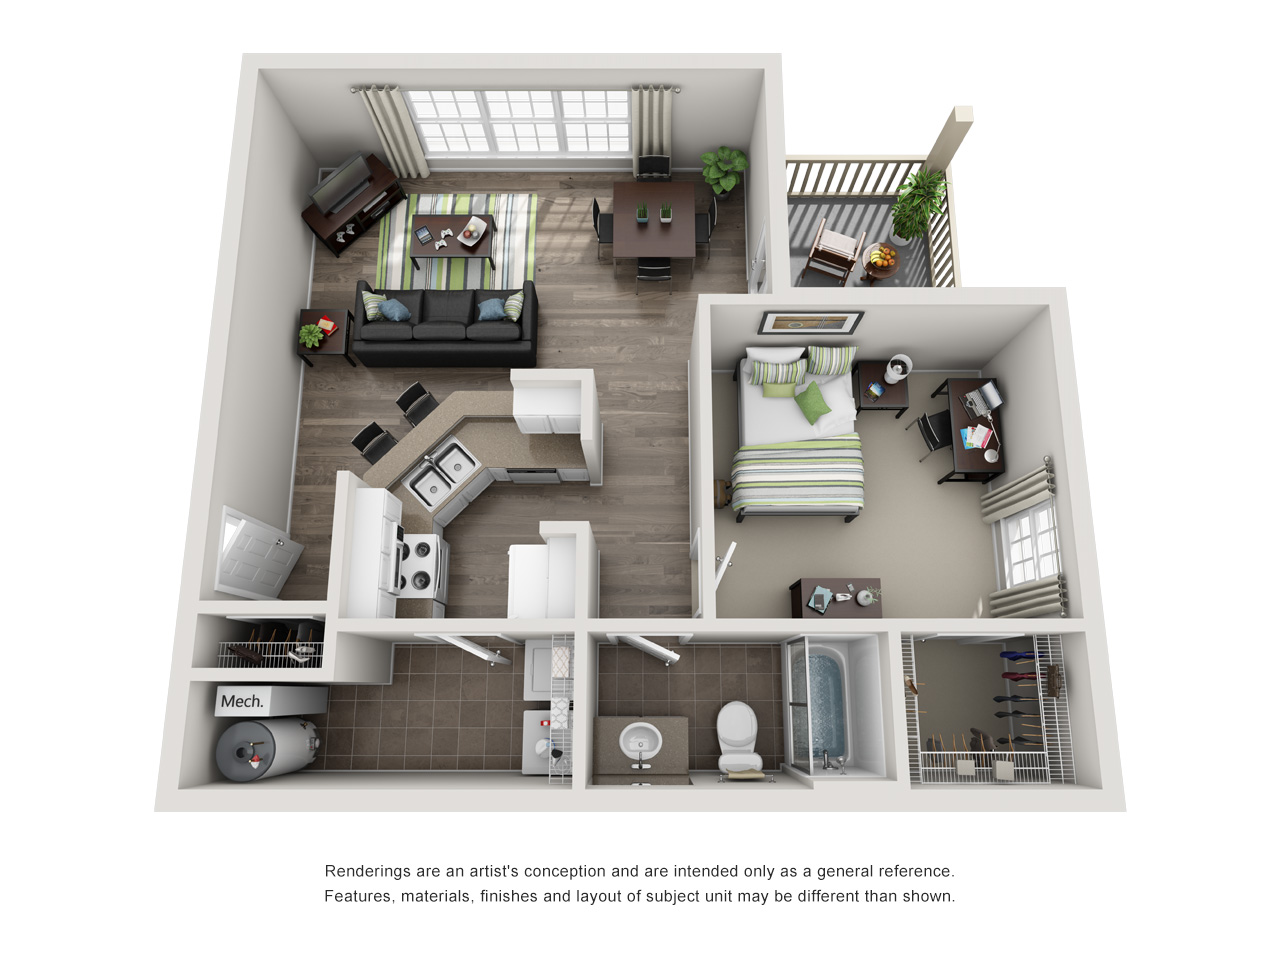 Floor plan of a one- bedroom student apartment